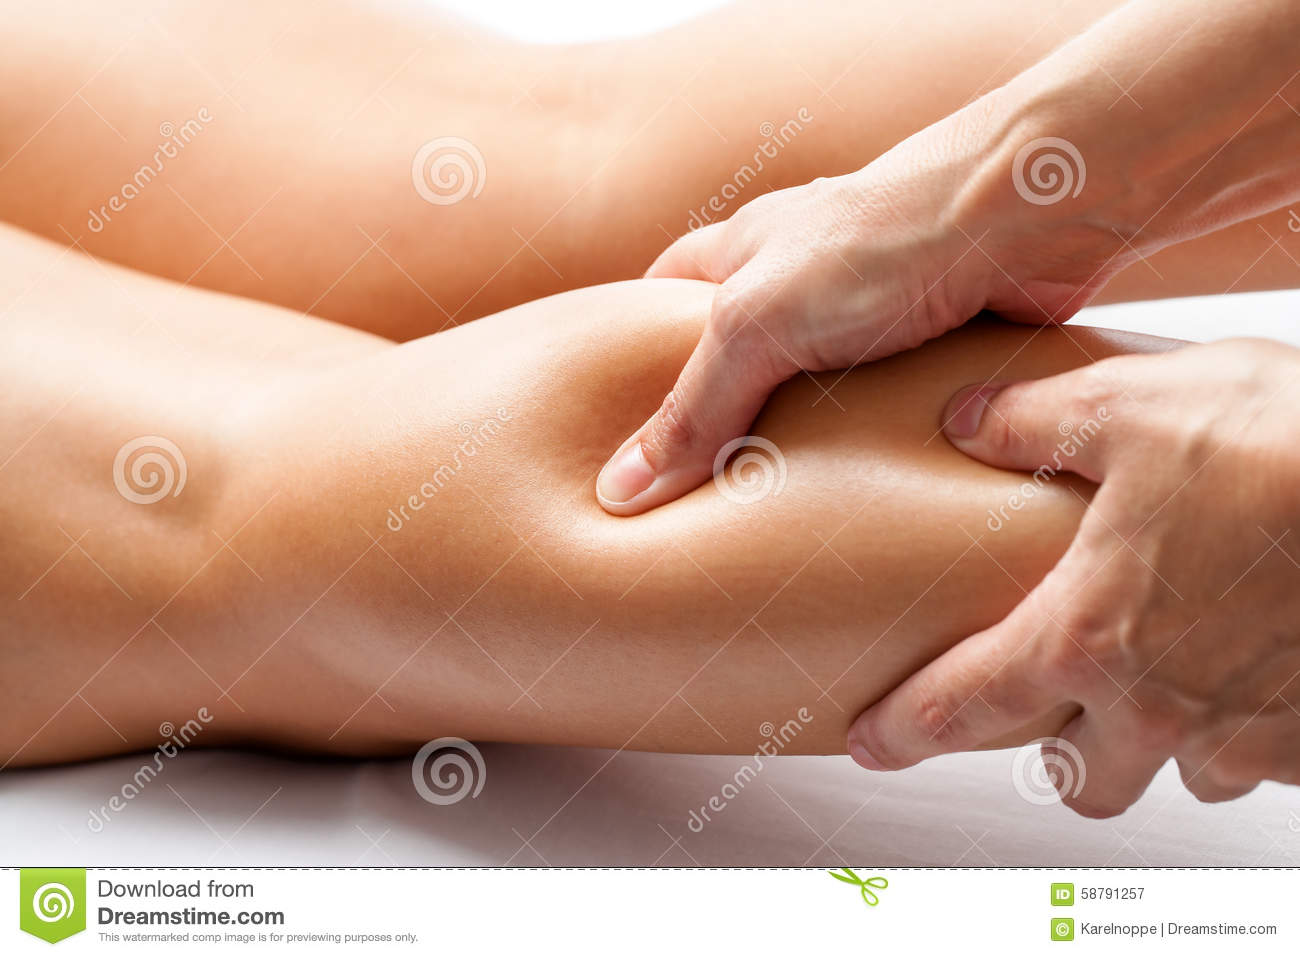 Therapist applying pressure with thumb on female calf muscle.